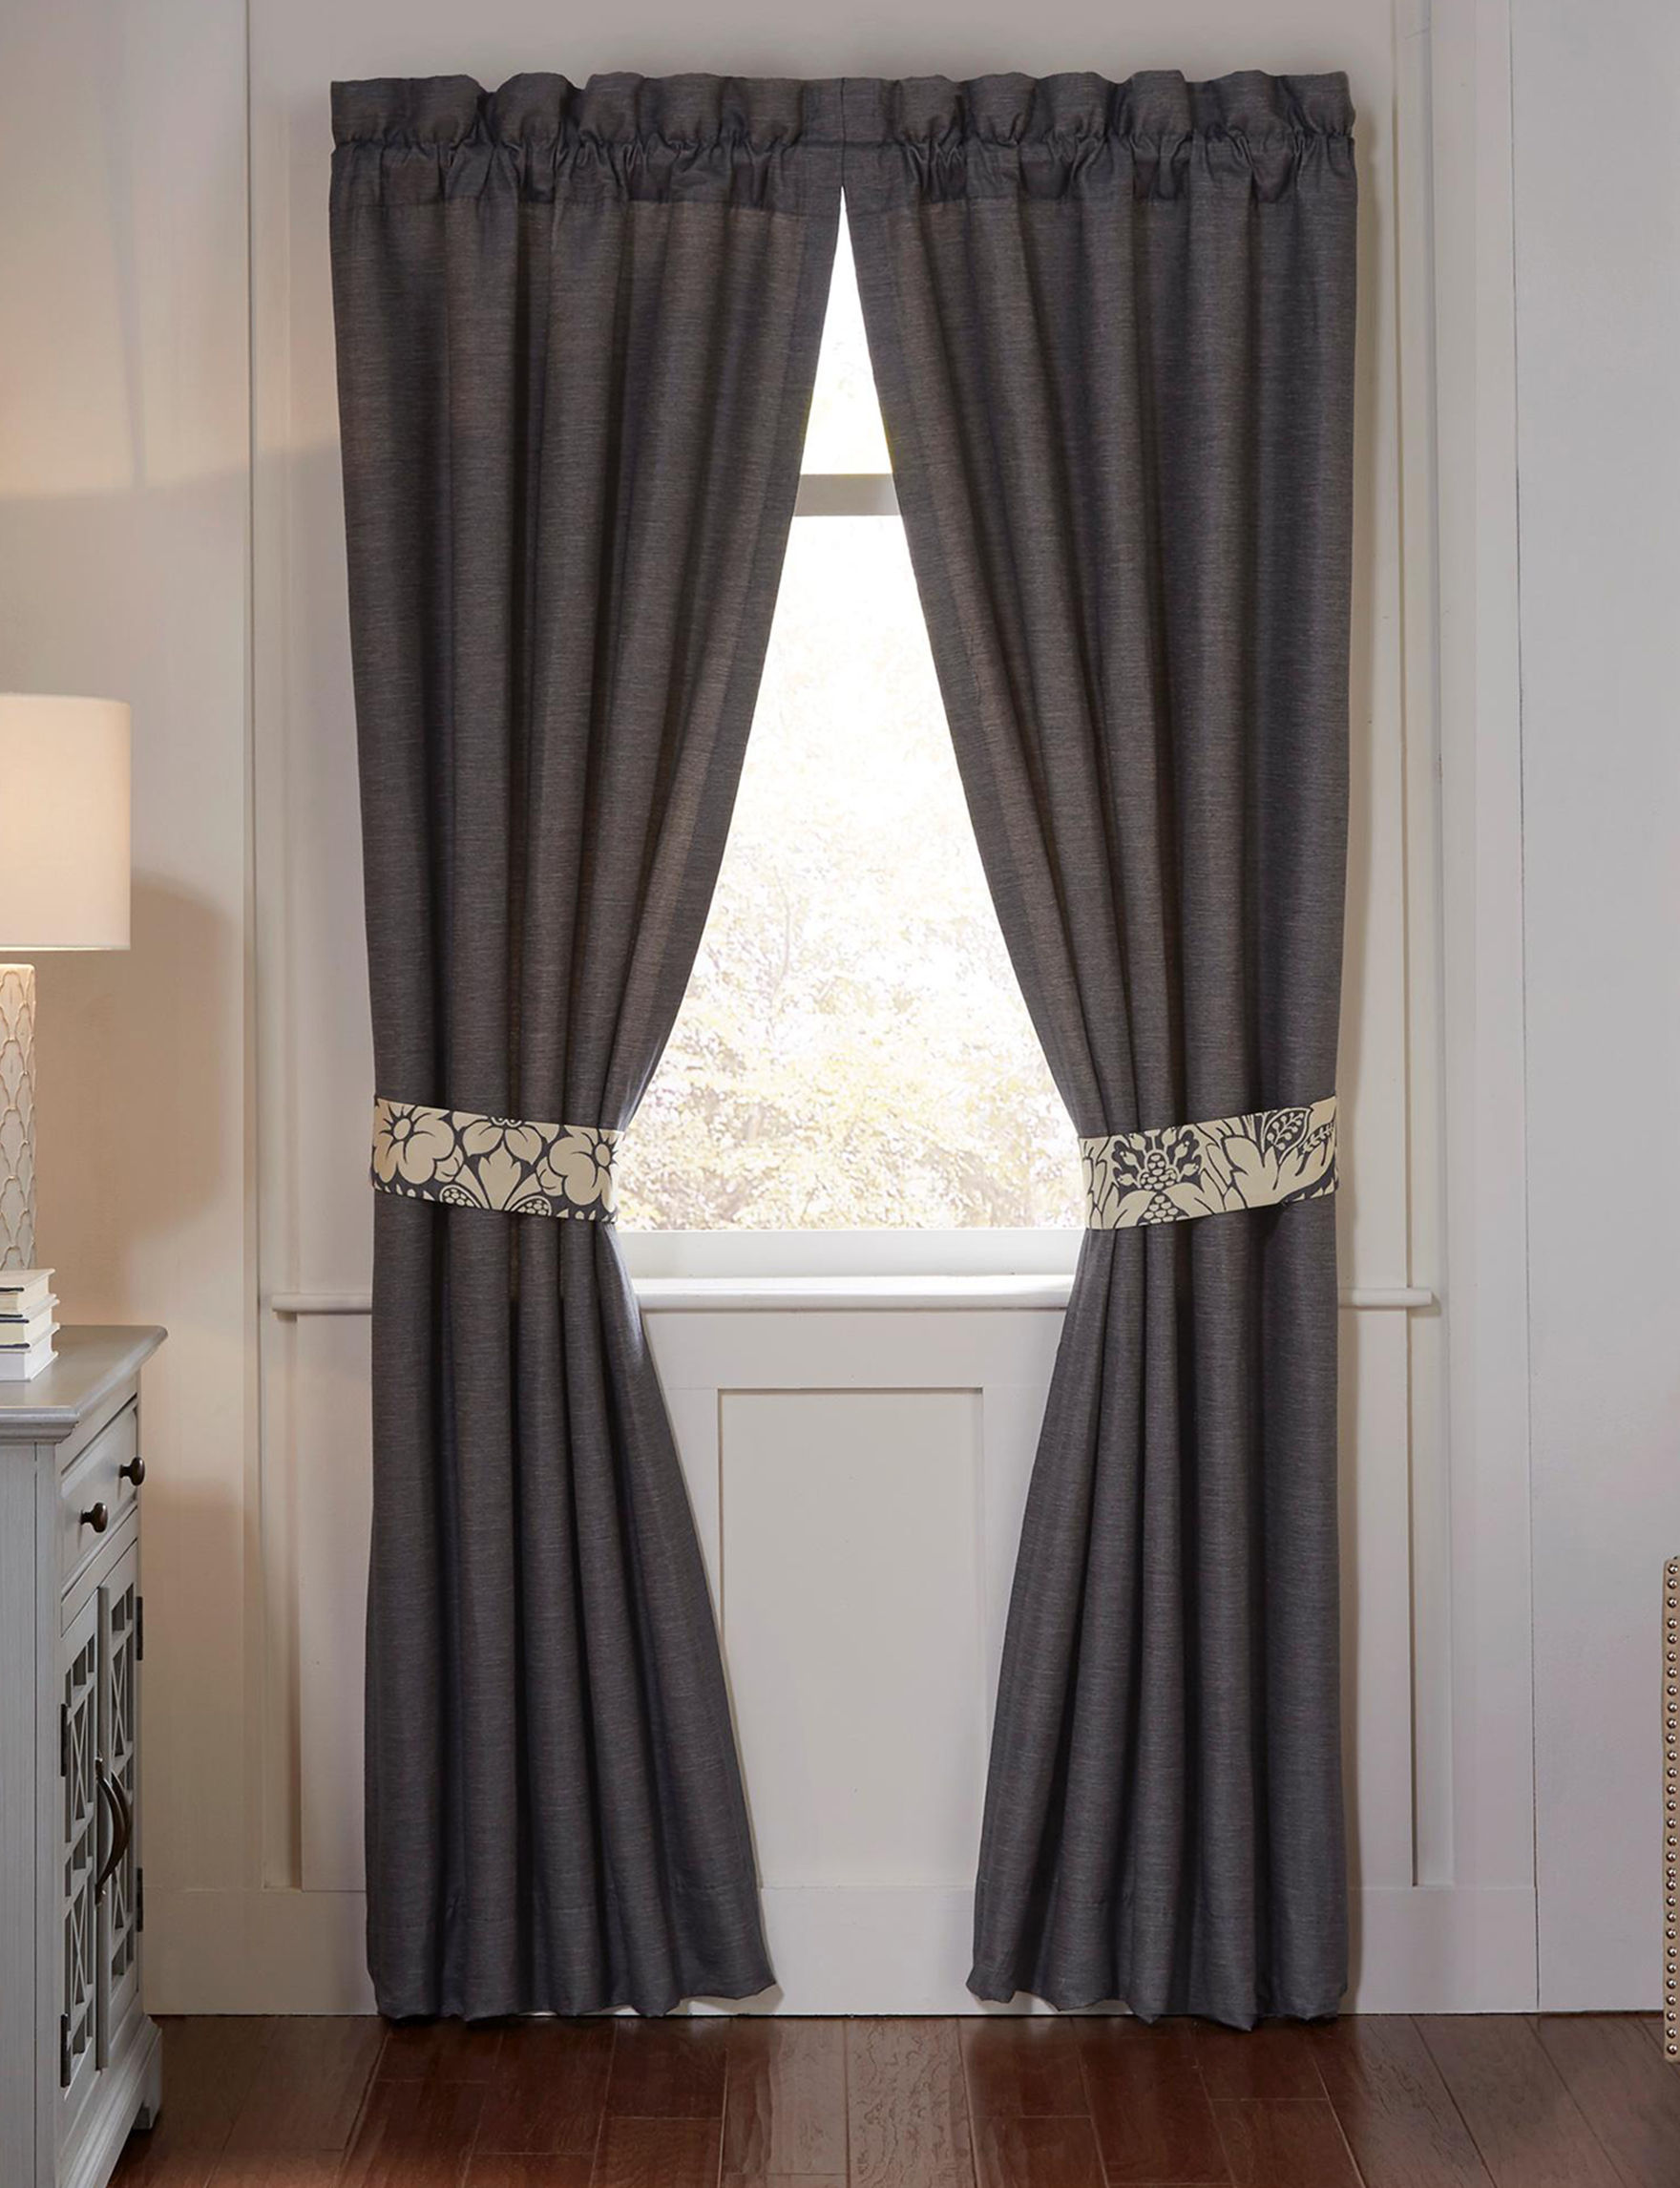 shop drapes denim in design kendall dressing recycled a blackout from curtains panel curtain jeans made room sydney eclipse